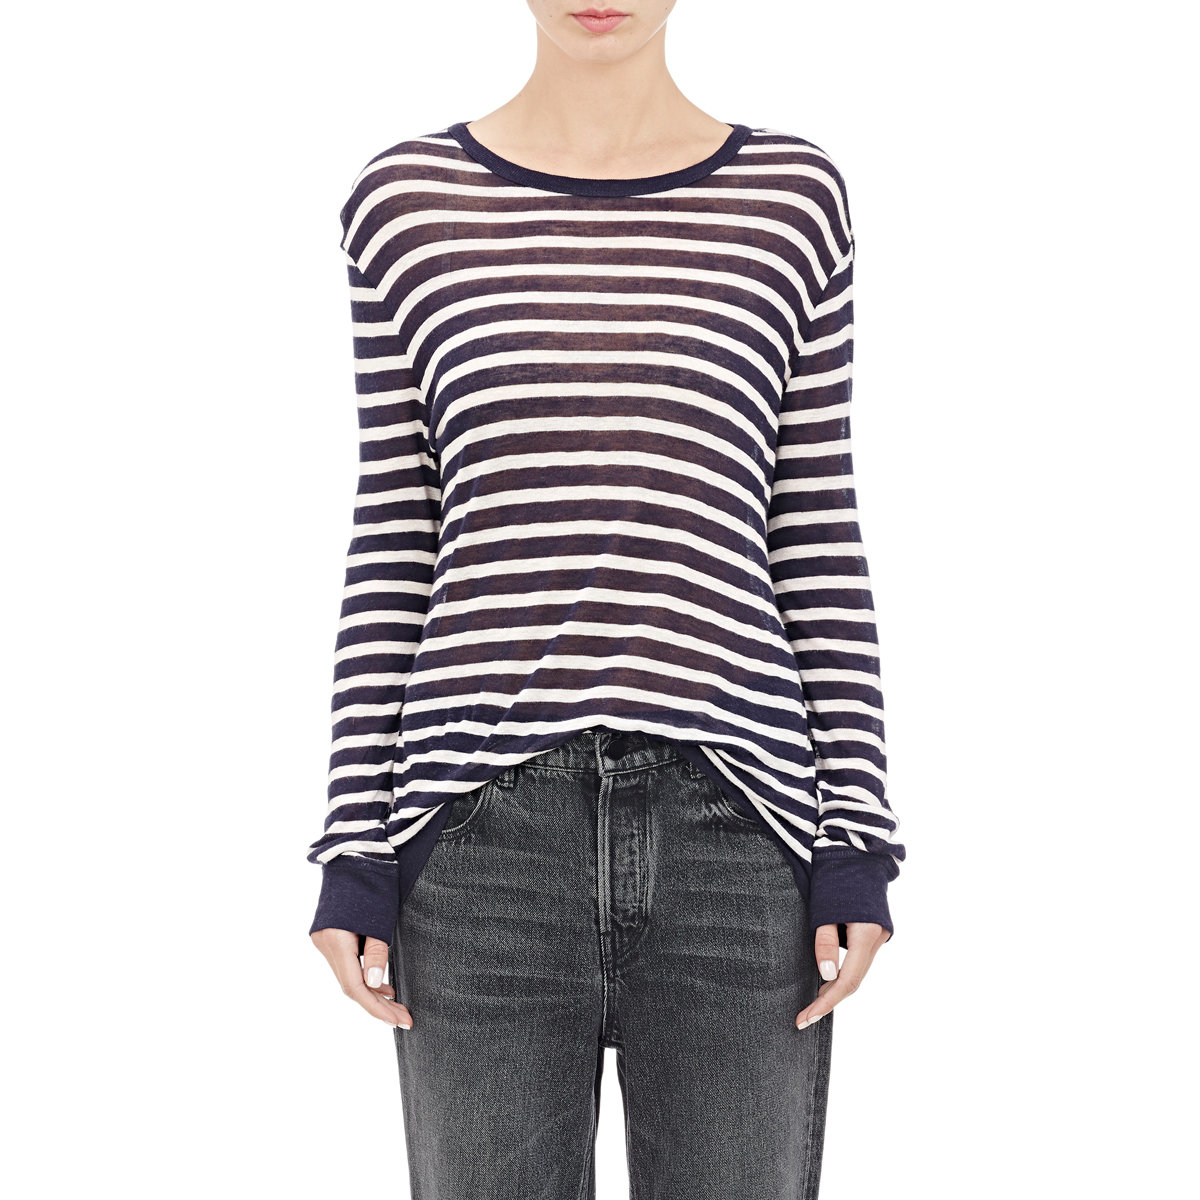 Lyst t by alexander wang striped long sleeve t shirt in blue Striped long sleeve t shirt